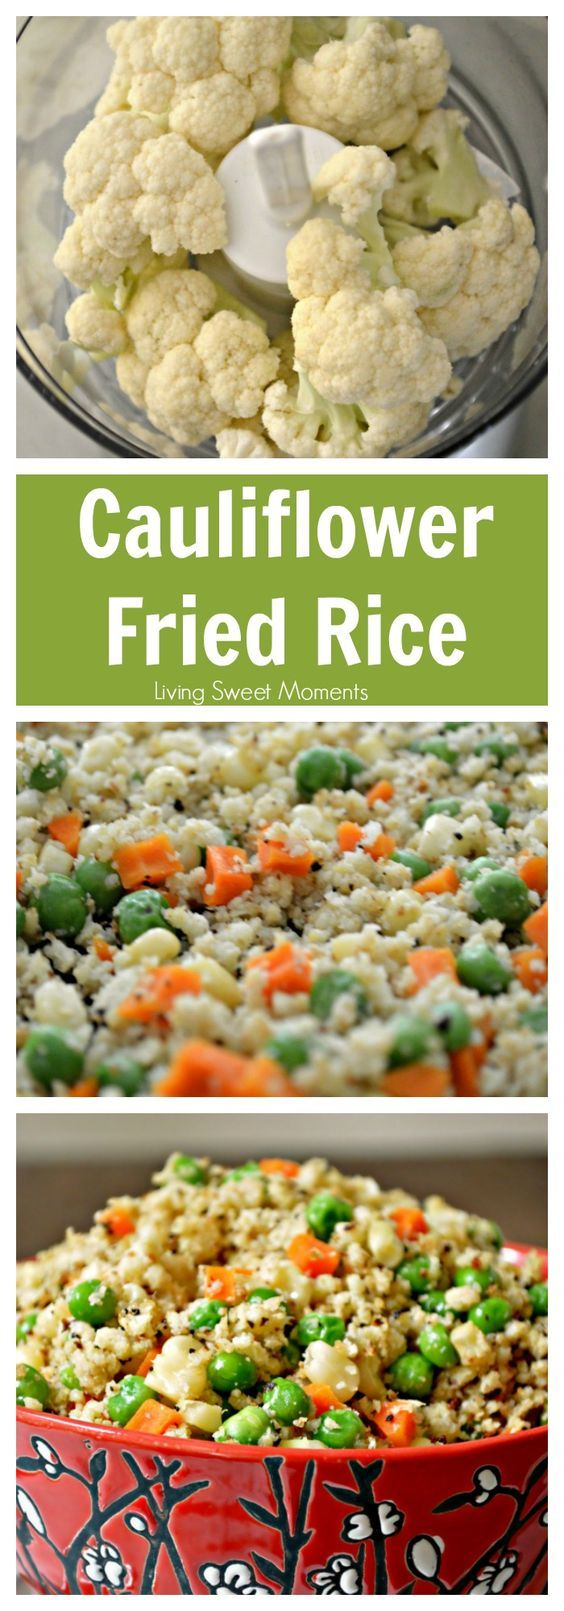 Cauliflower Fried Rice Recipe  Healthy lowcarb and seriously tasty! Tastes so much like the Chinese takeout but without the guilt. Perfect healthy side dish. More on livingsweetmoment...